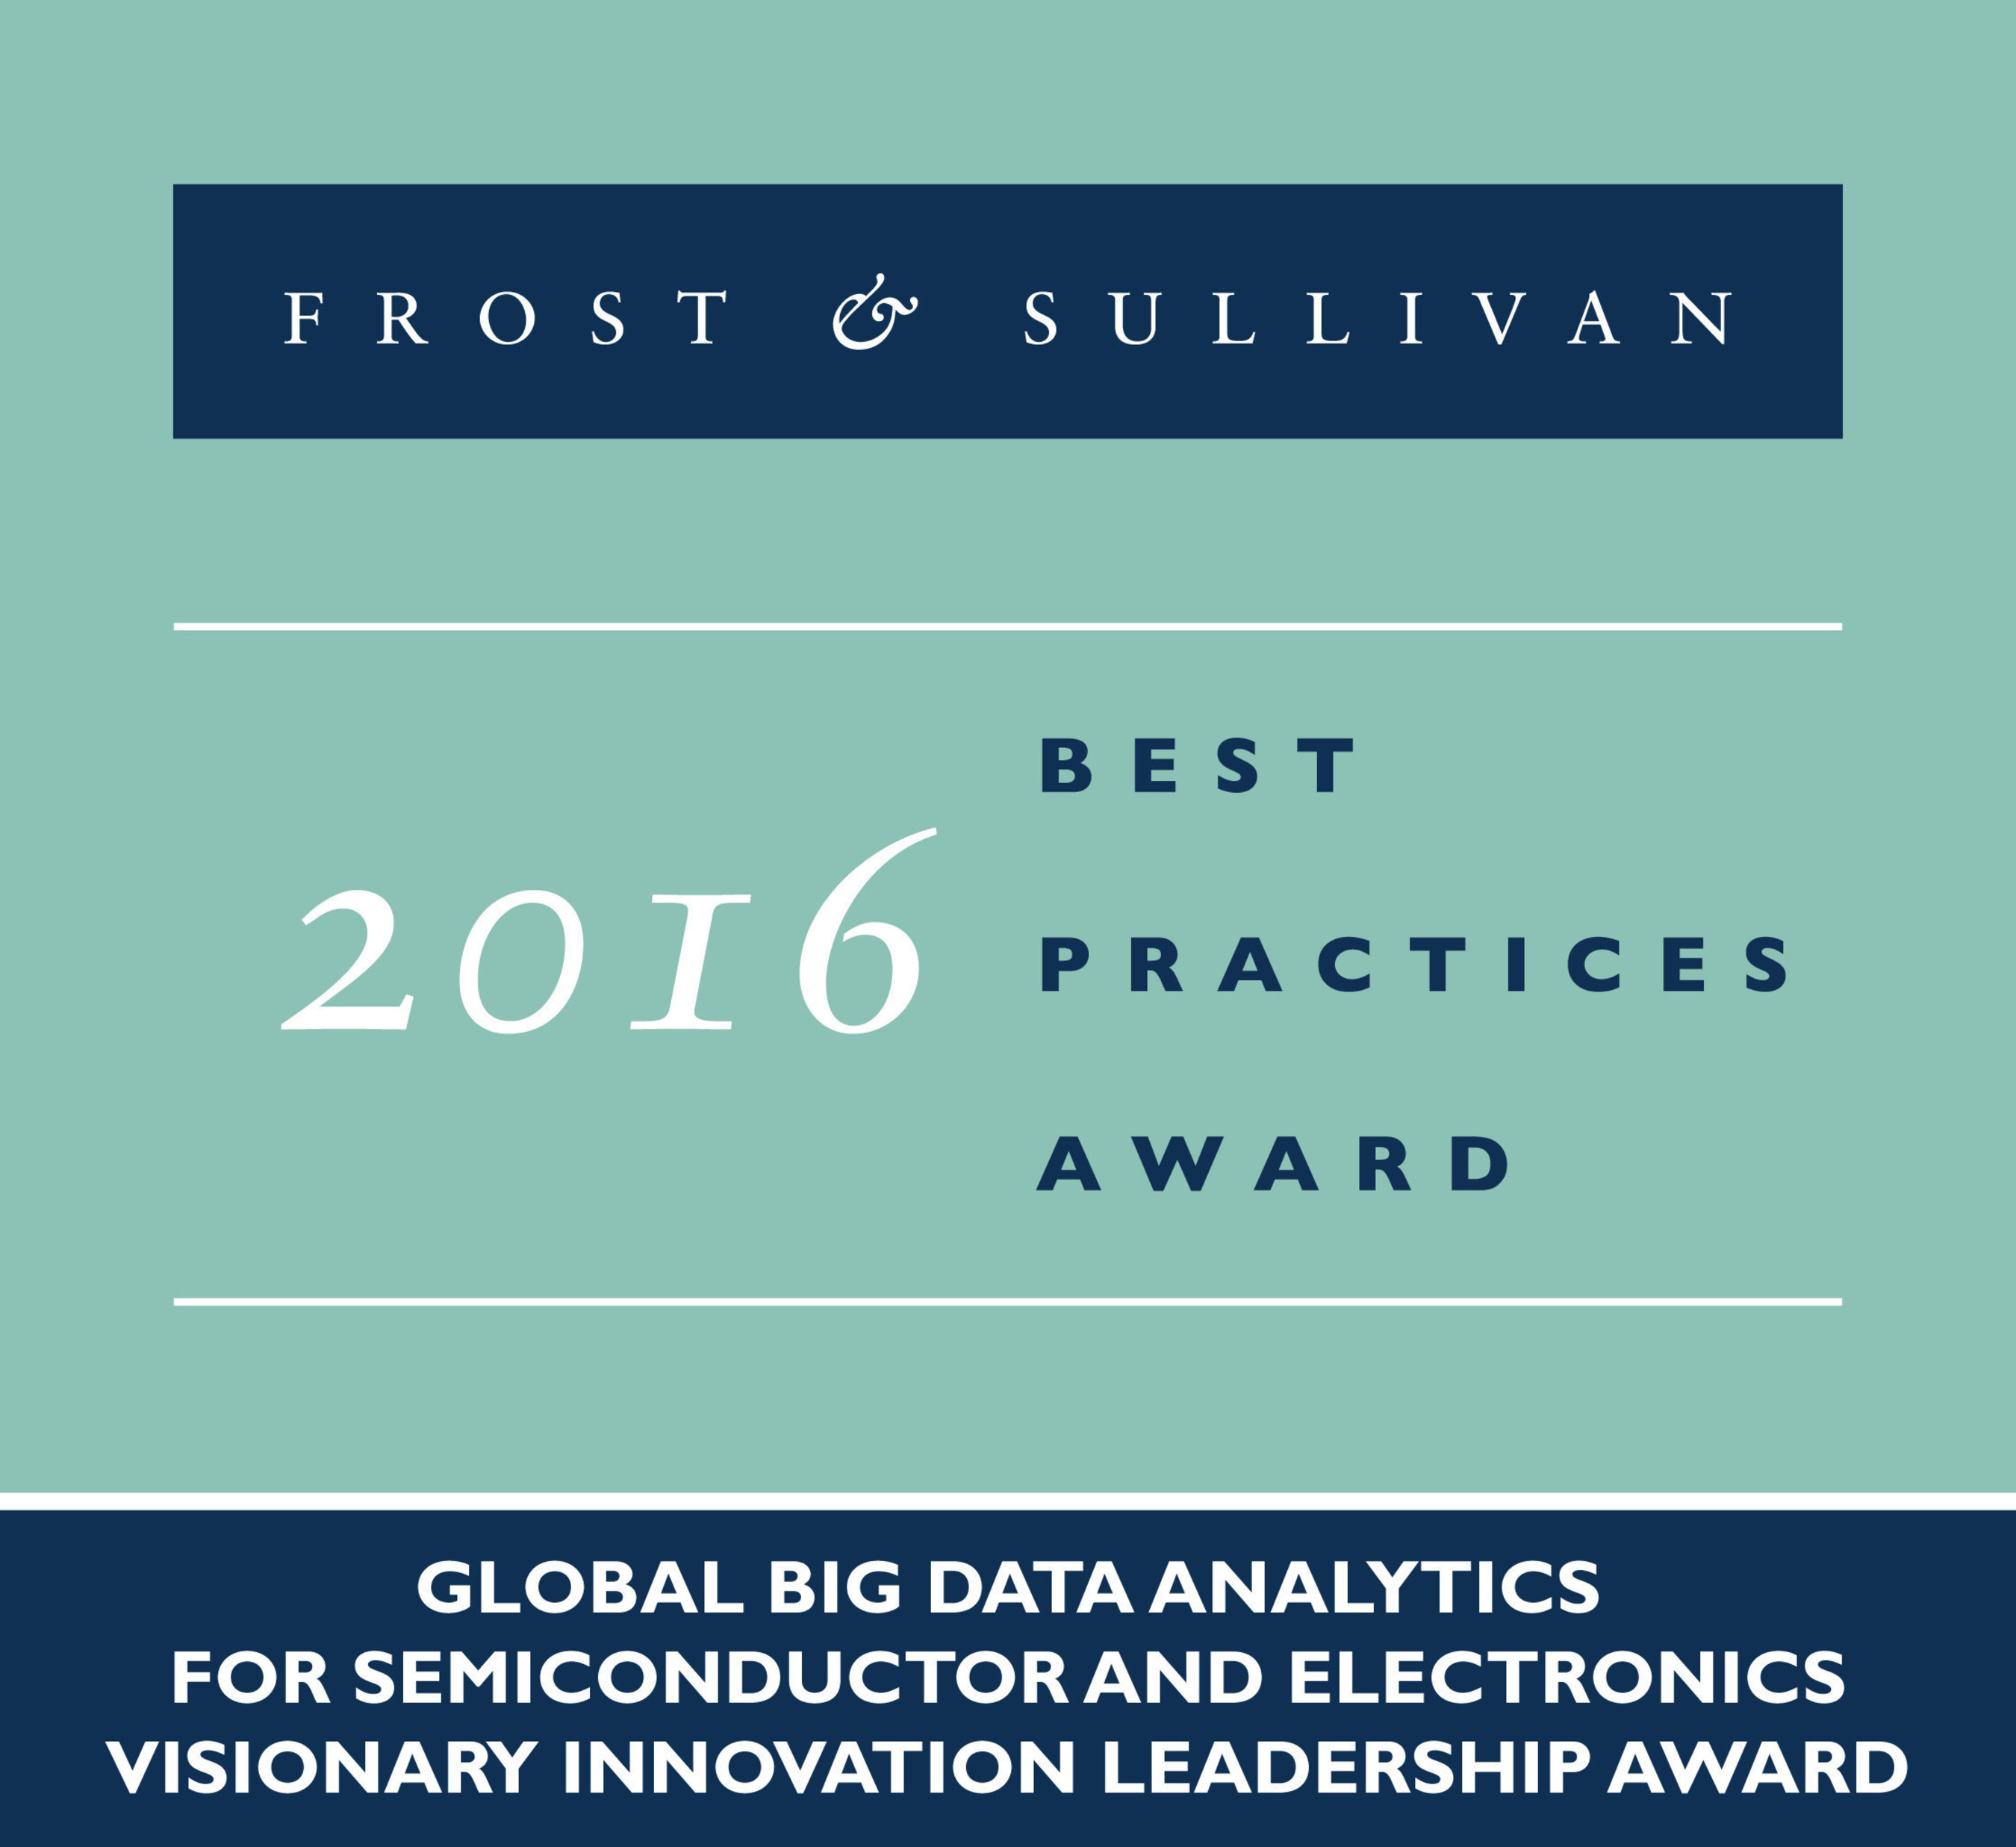 Frost & Sullivan Commends Optimal+'s IIoT Vision in Bridging the Data Silos within and between the Semiconductor and Electronics Industries